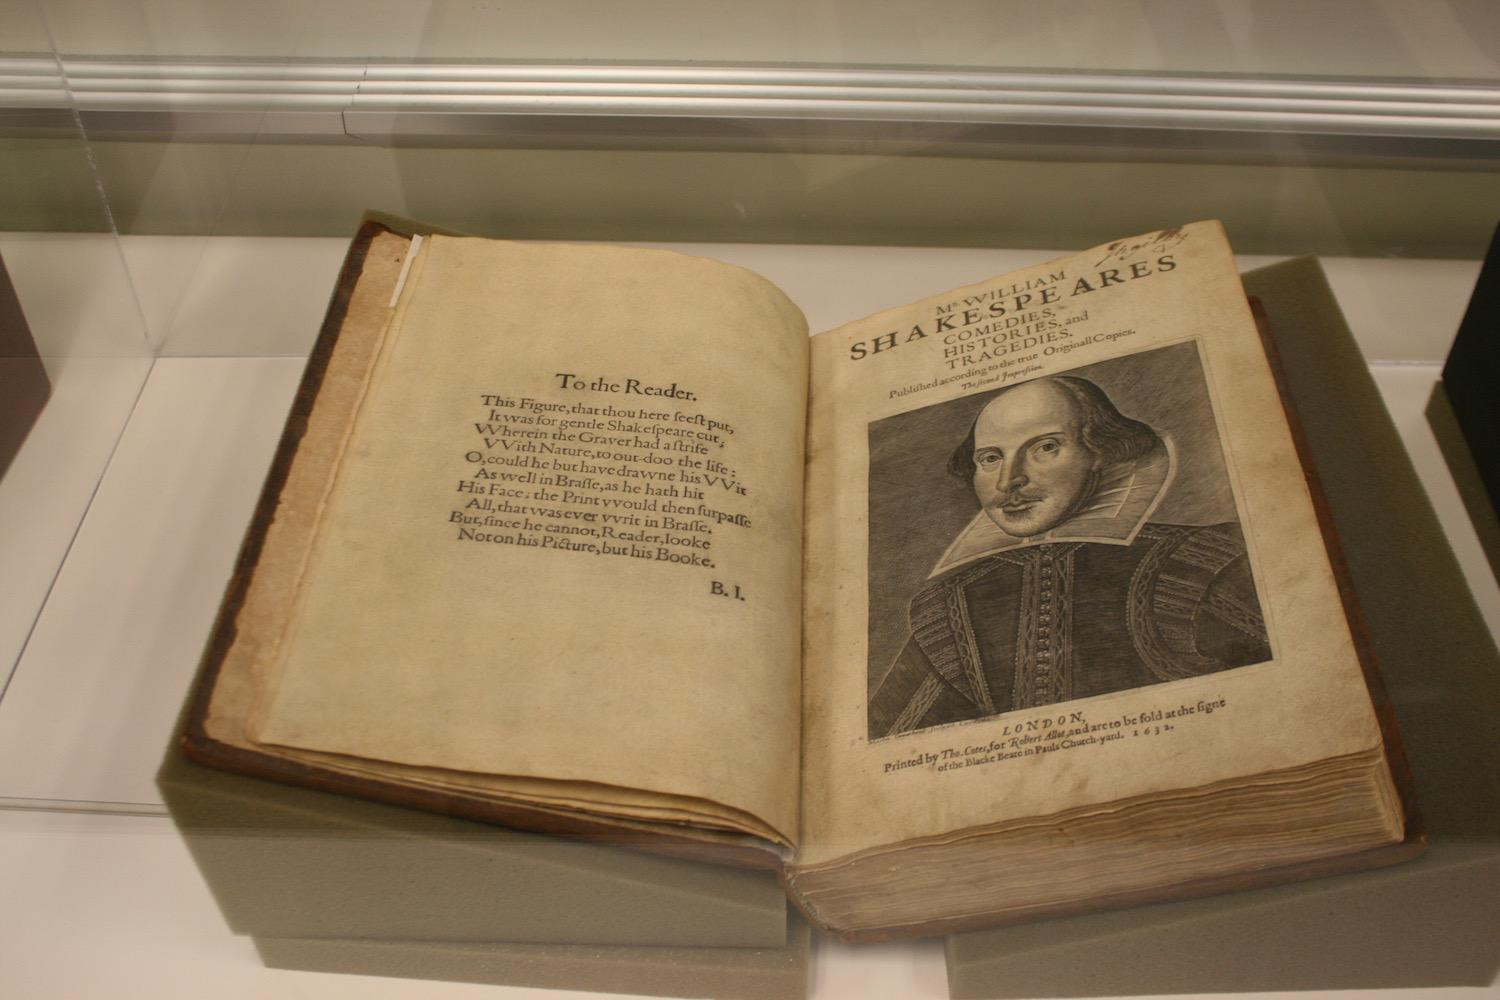 This 384-year-old book, UA archives' original copy of Shakespeare's second folio, was displayed at last Friday's event celebrating the playwright's life and work.